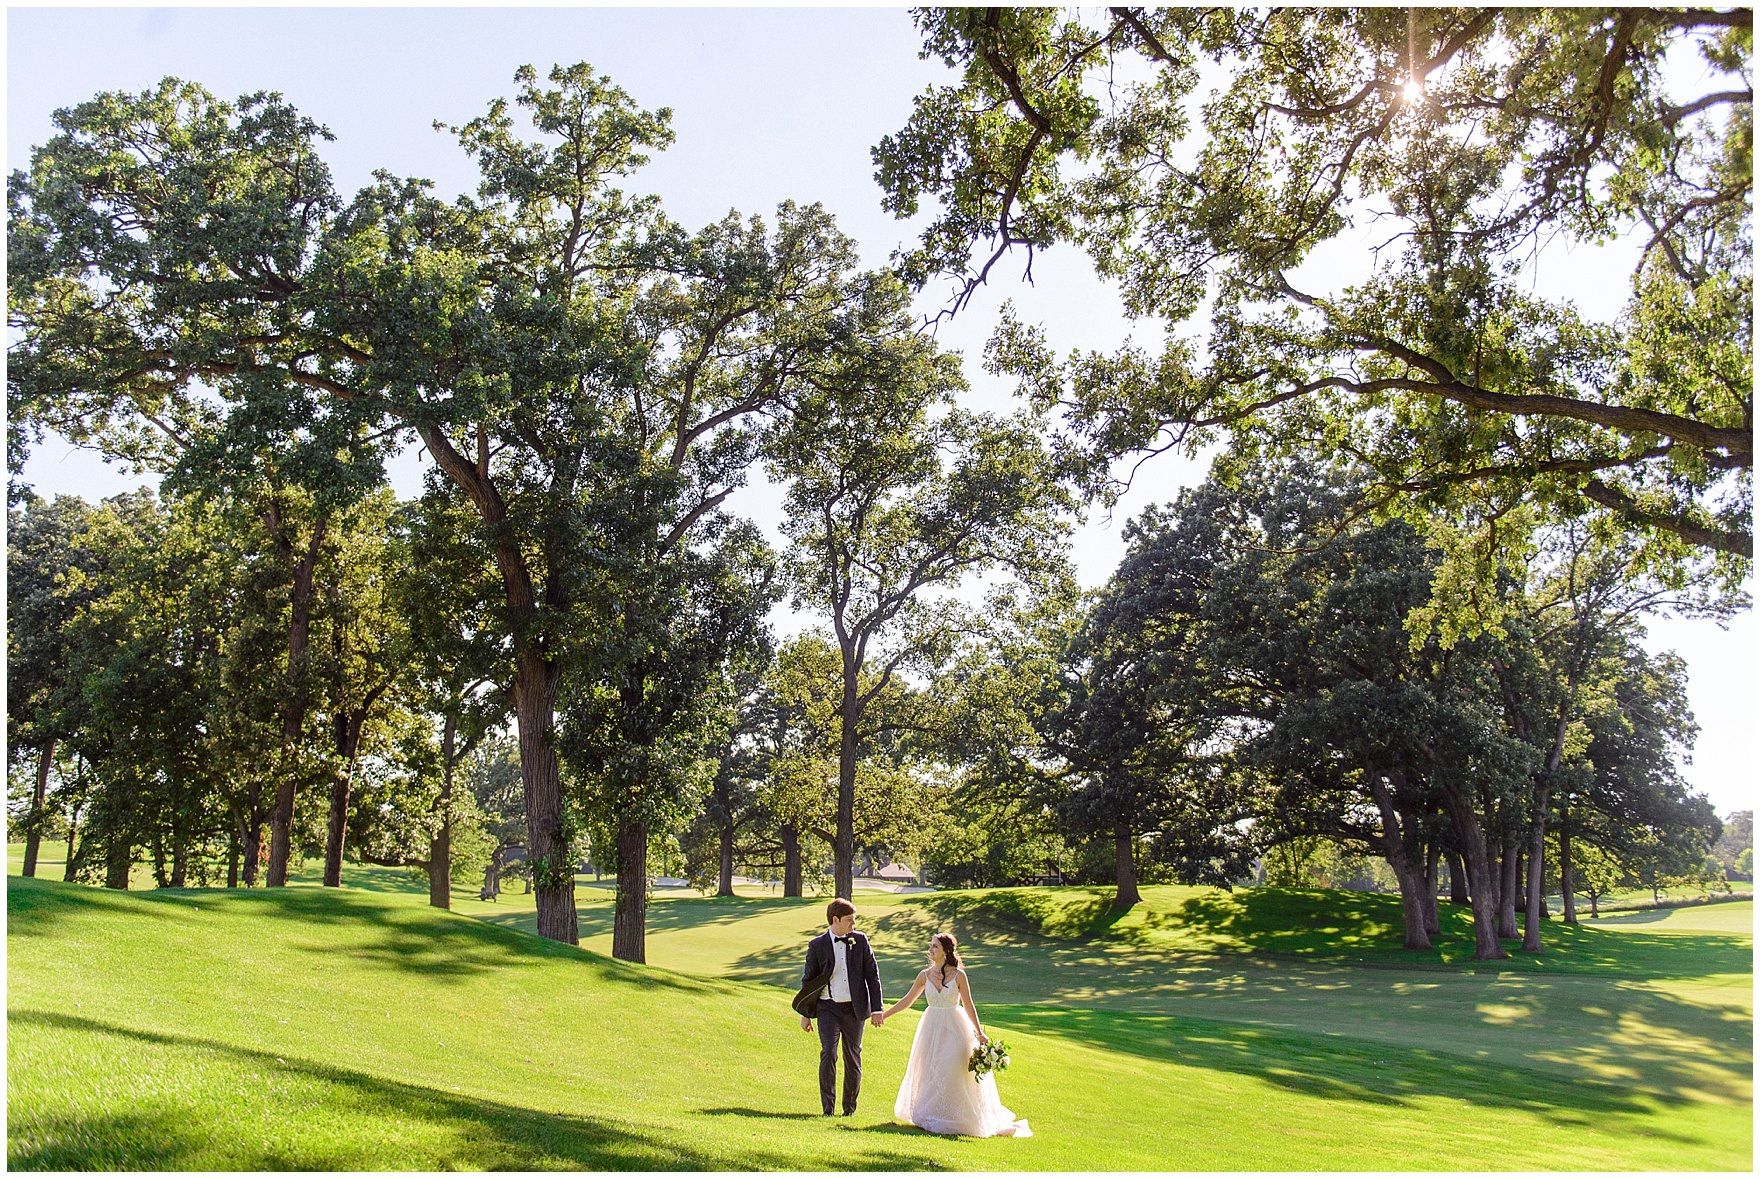 The bride and groom walk and laugh during a Butterfield Country Club wedding.